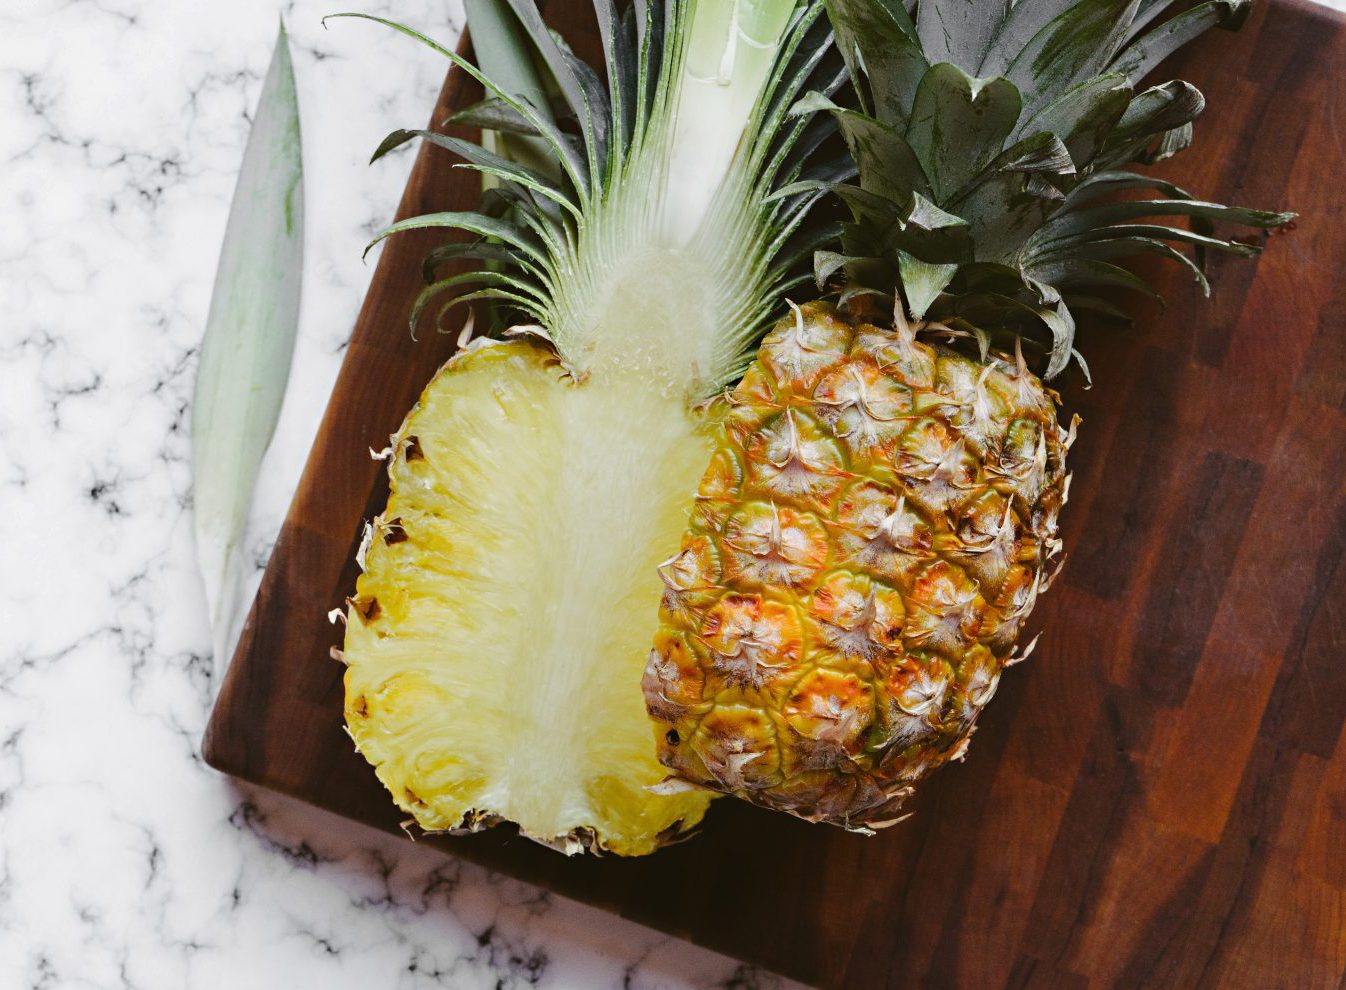 a pineapple sliced the wrong way